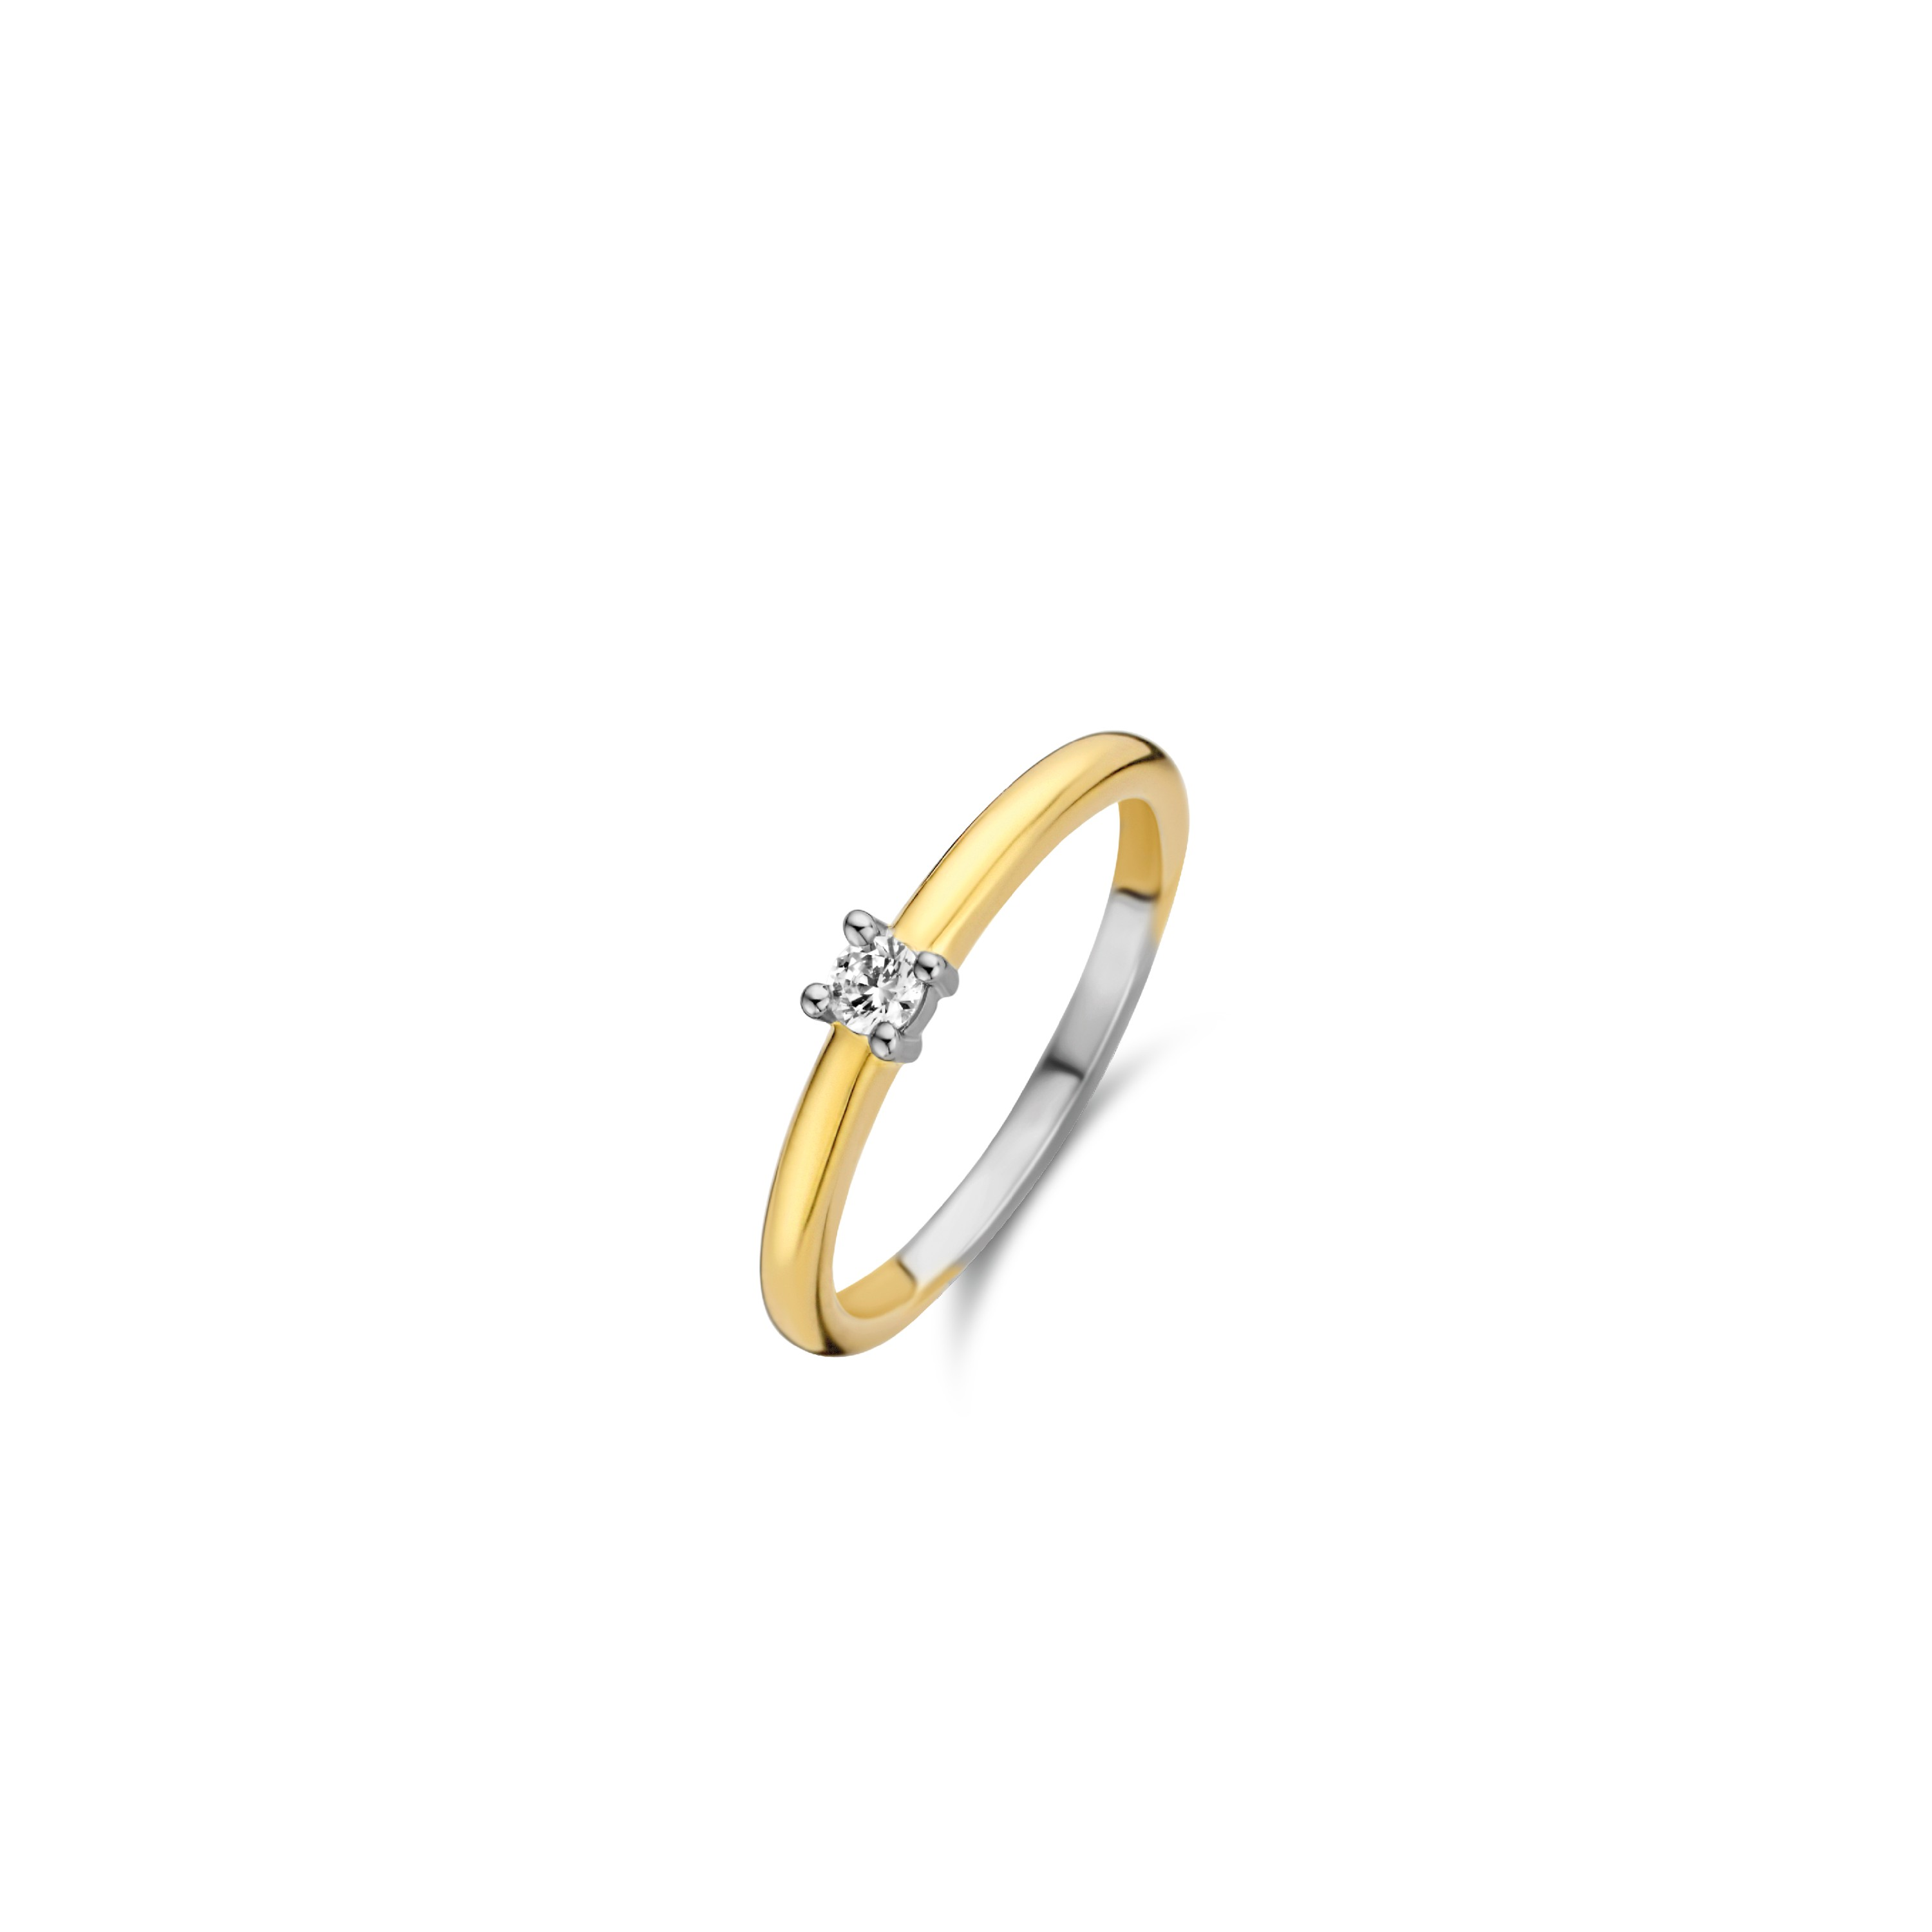 TI SENTO Milano Ring 12211ZY Zilver gold plated Maat 56